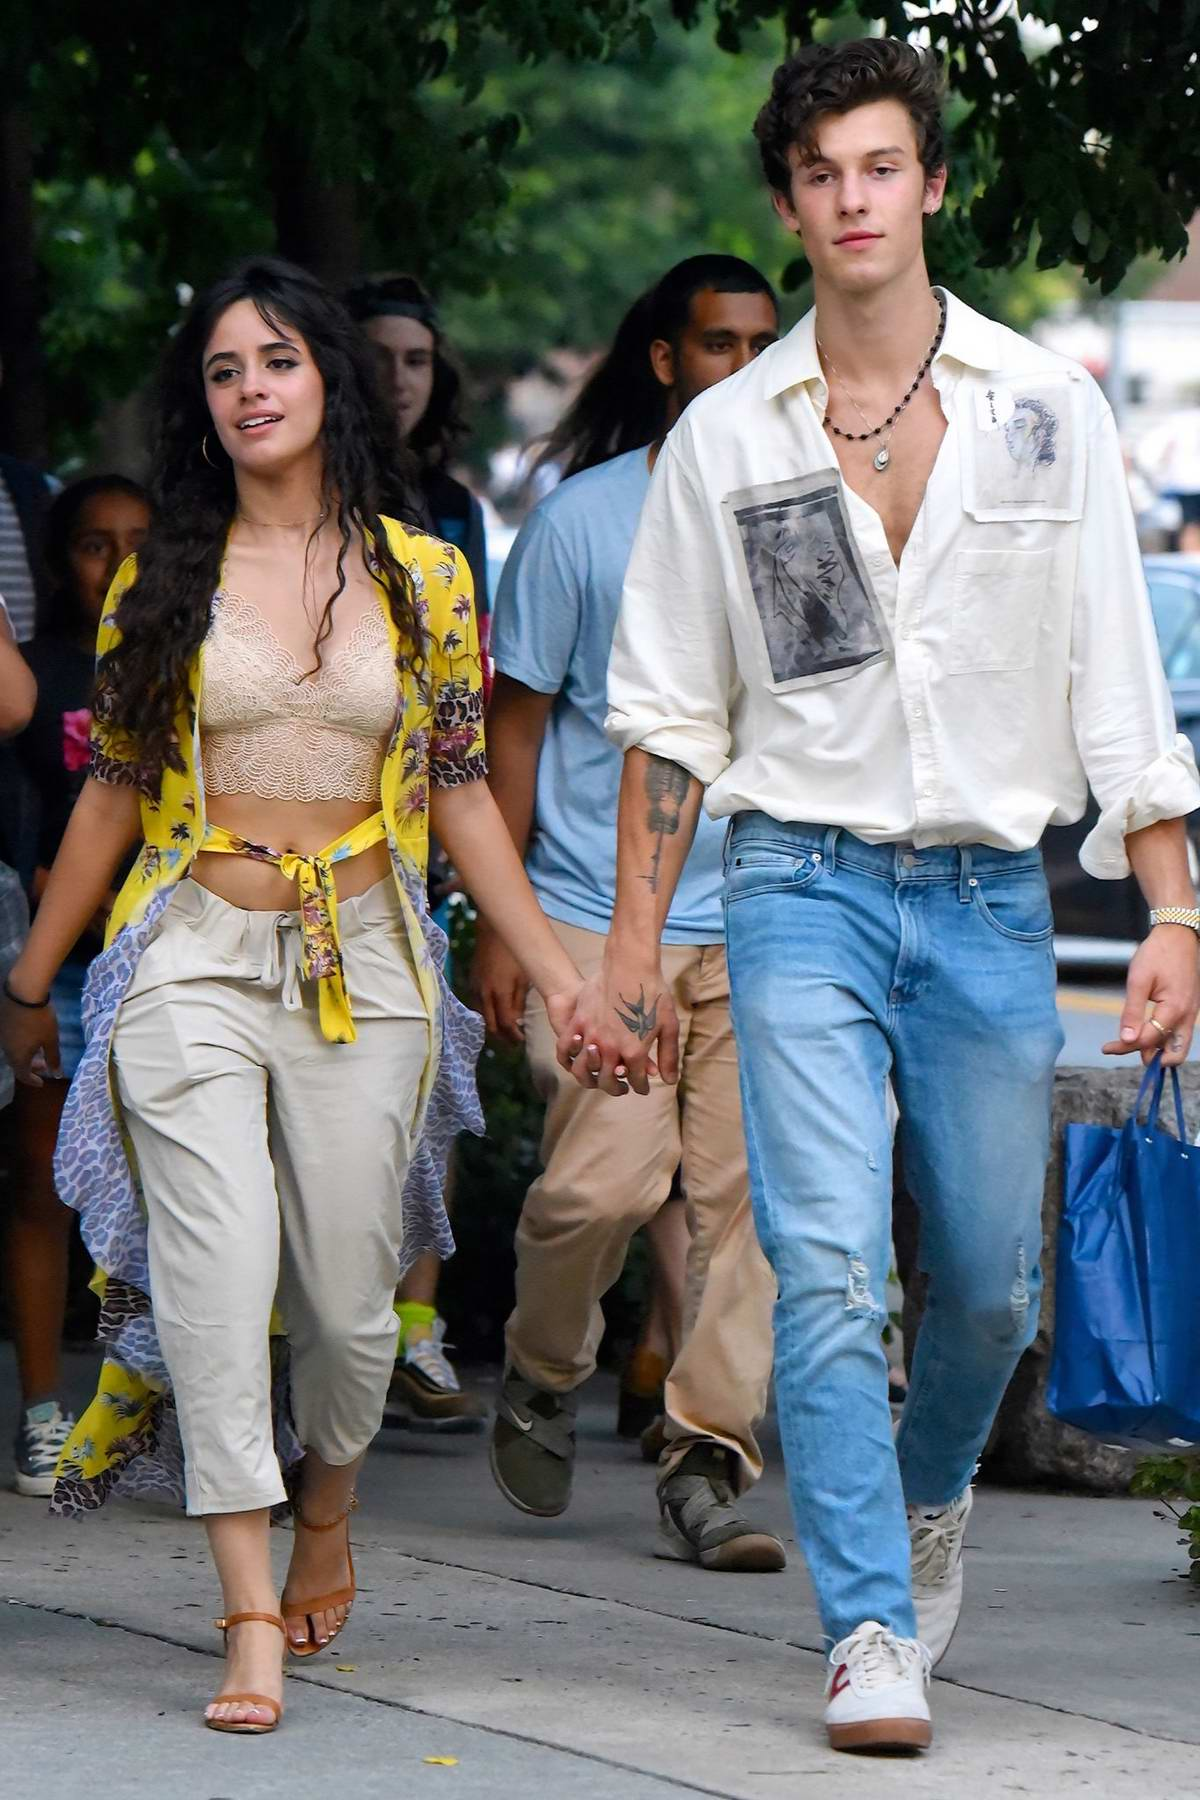 Camila Cabello and Shawn Mendes are all smiles as they hold hands and stroll through the streets of New York City